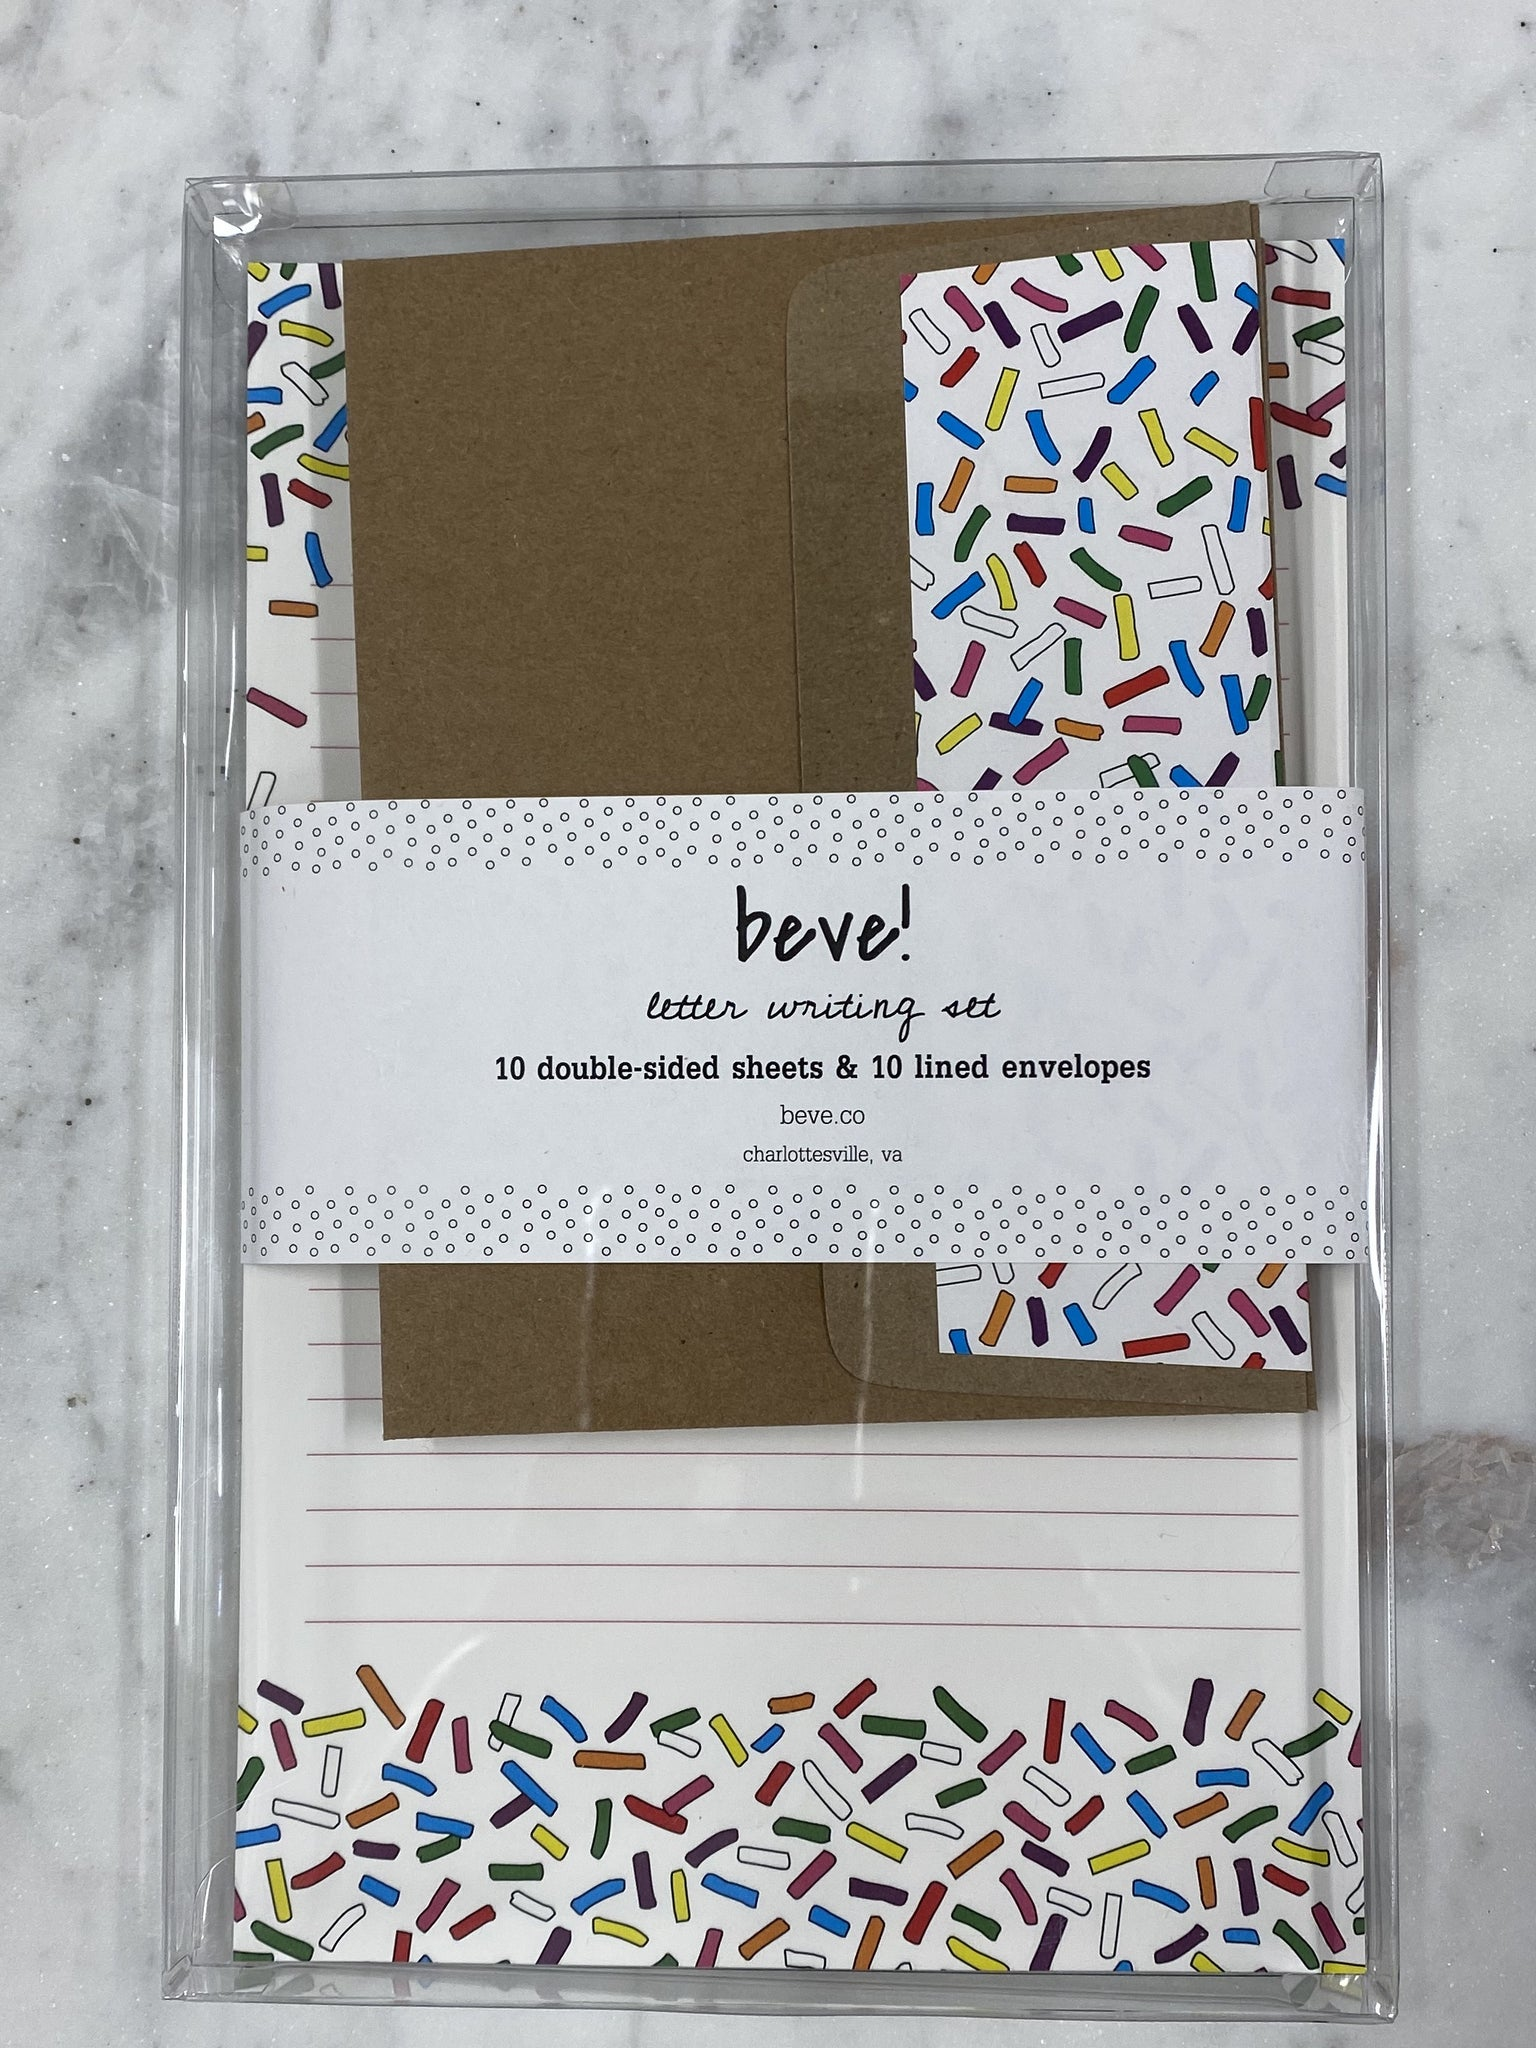 Sprinkles Letter Writing Set